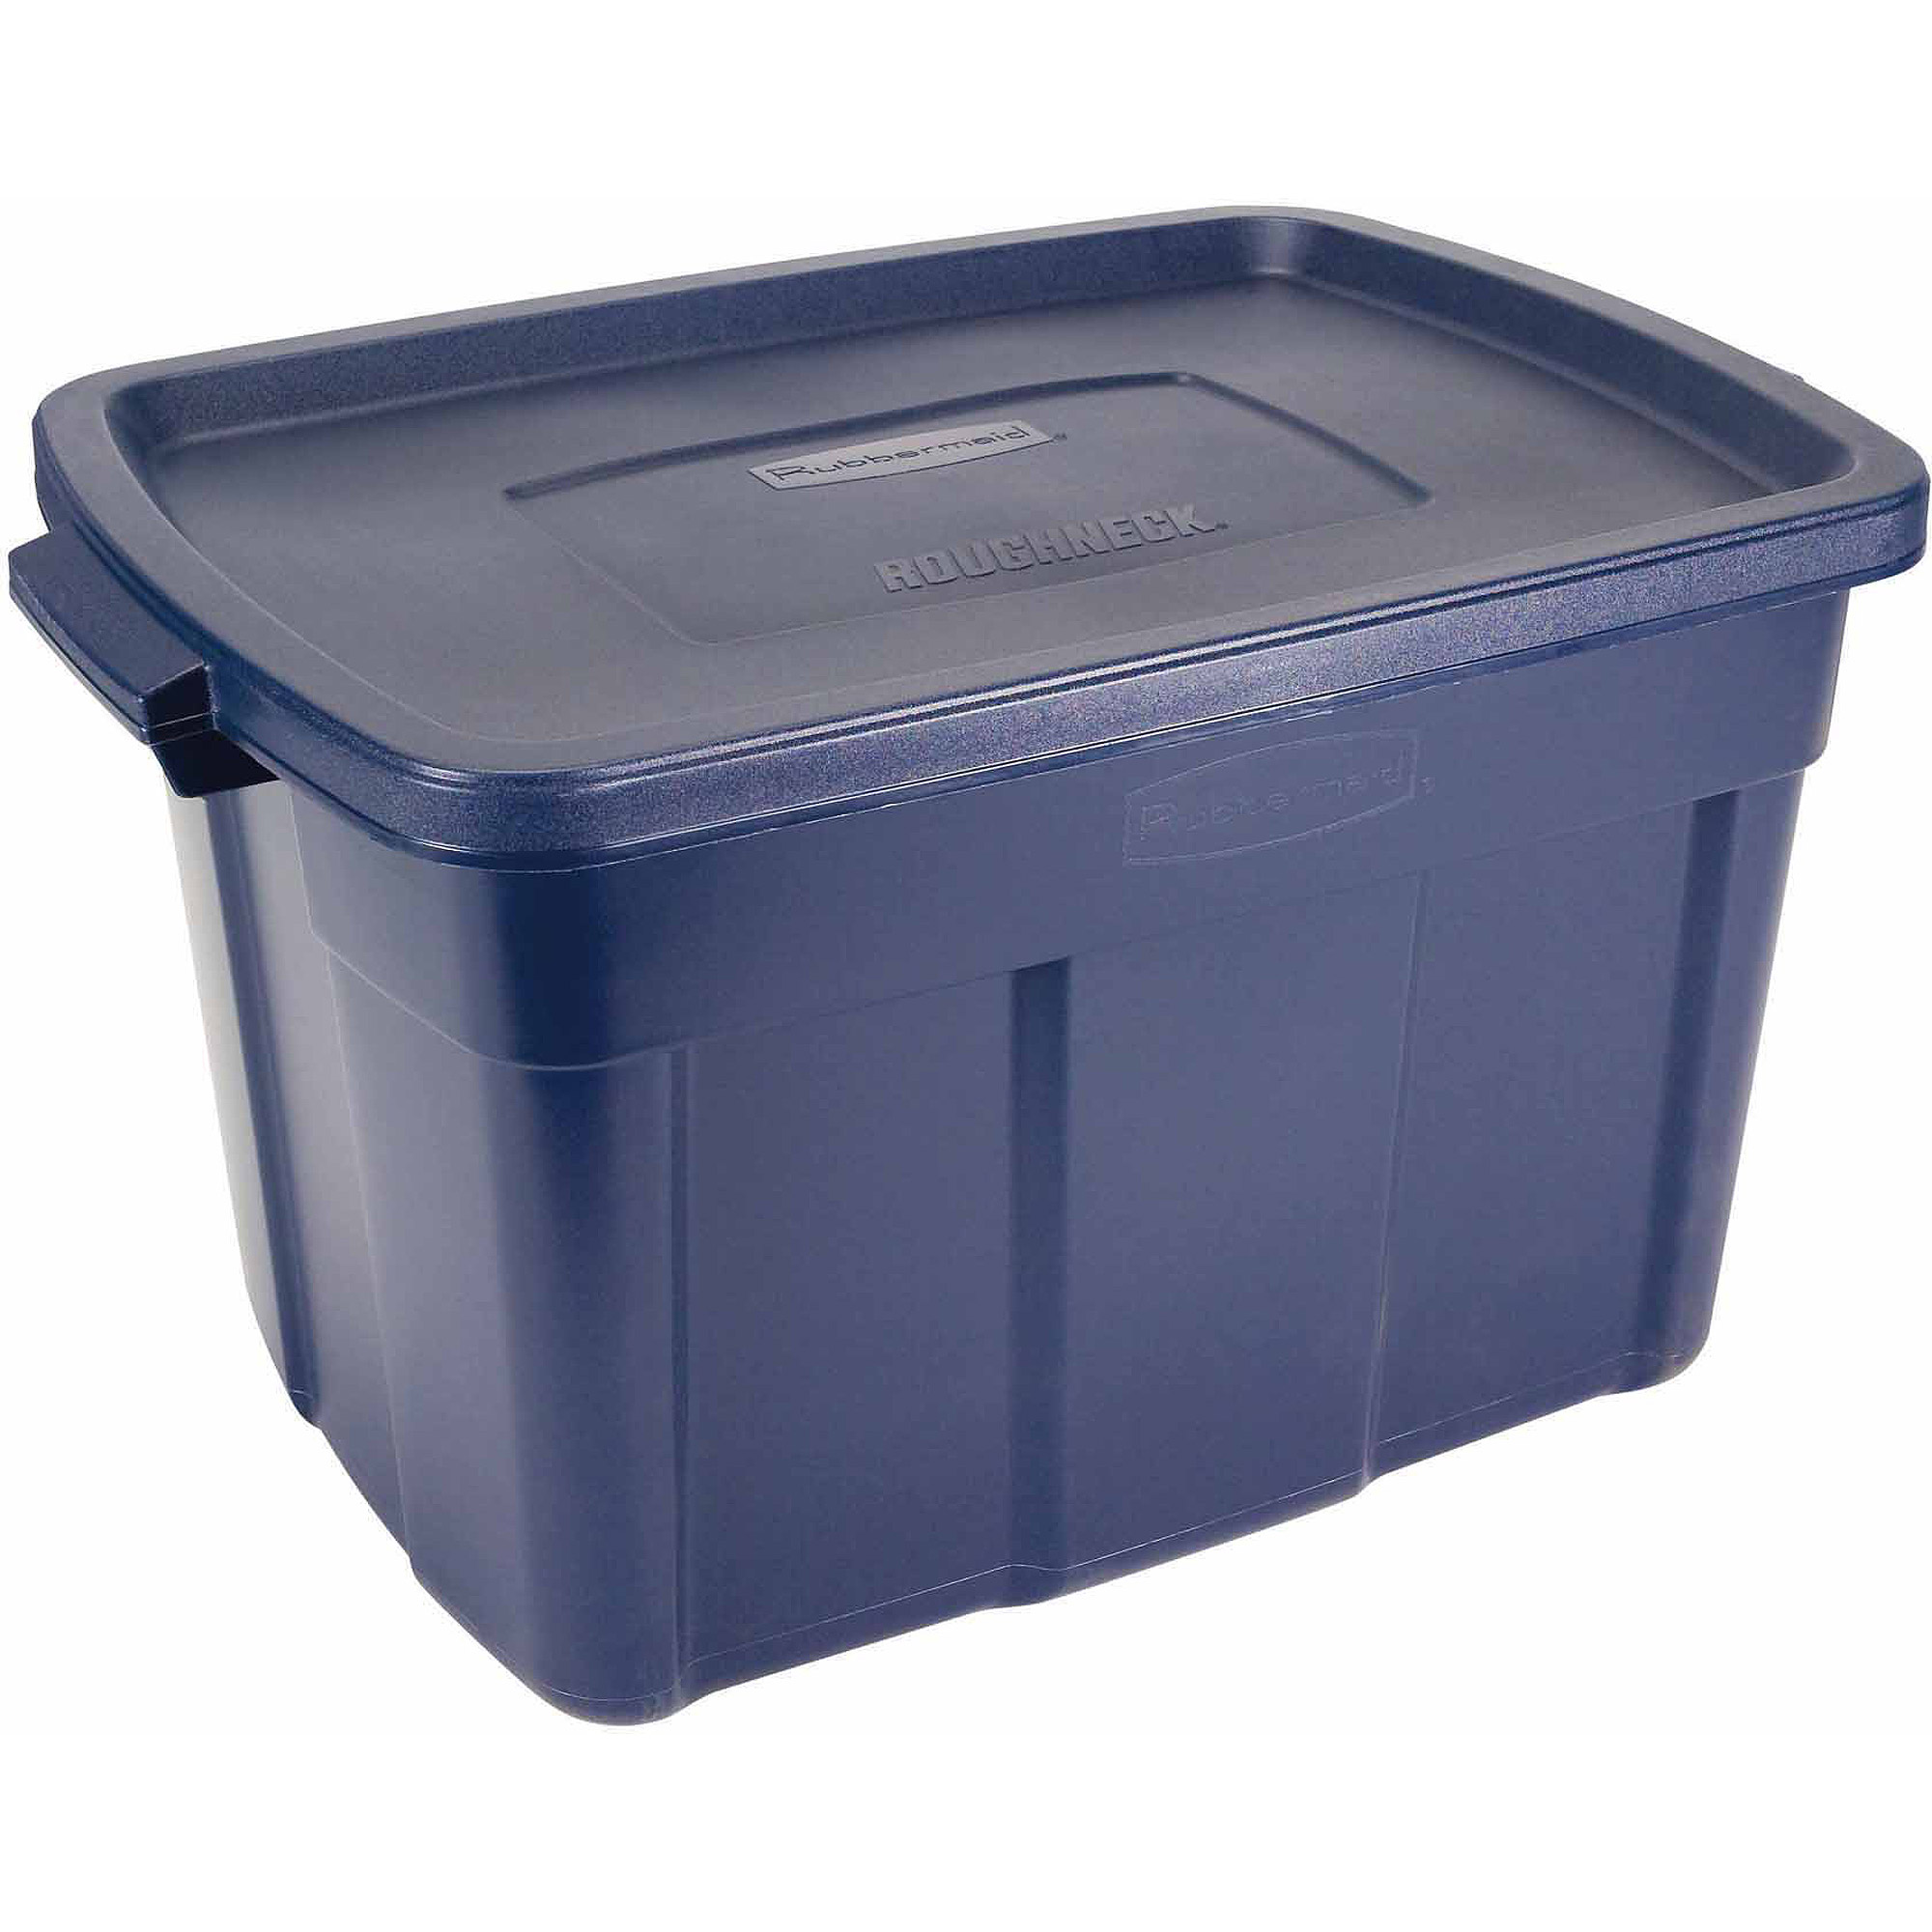 Rubbermaid Roughneck Tote Storage Bin, 25 Gal, Dark Indigo Metallic